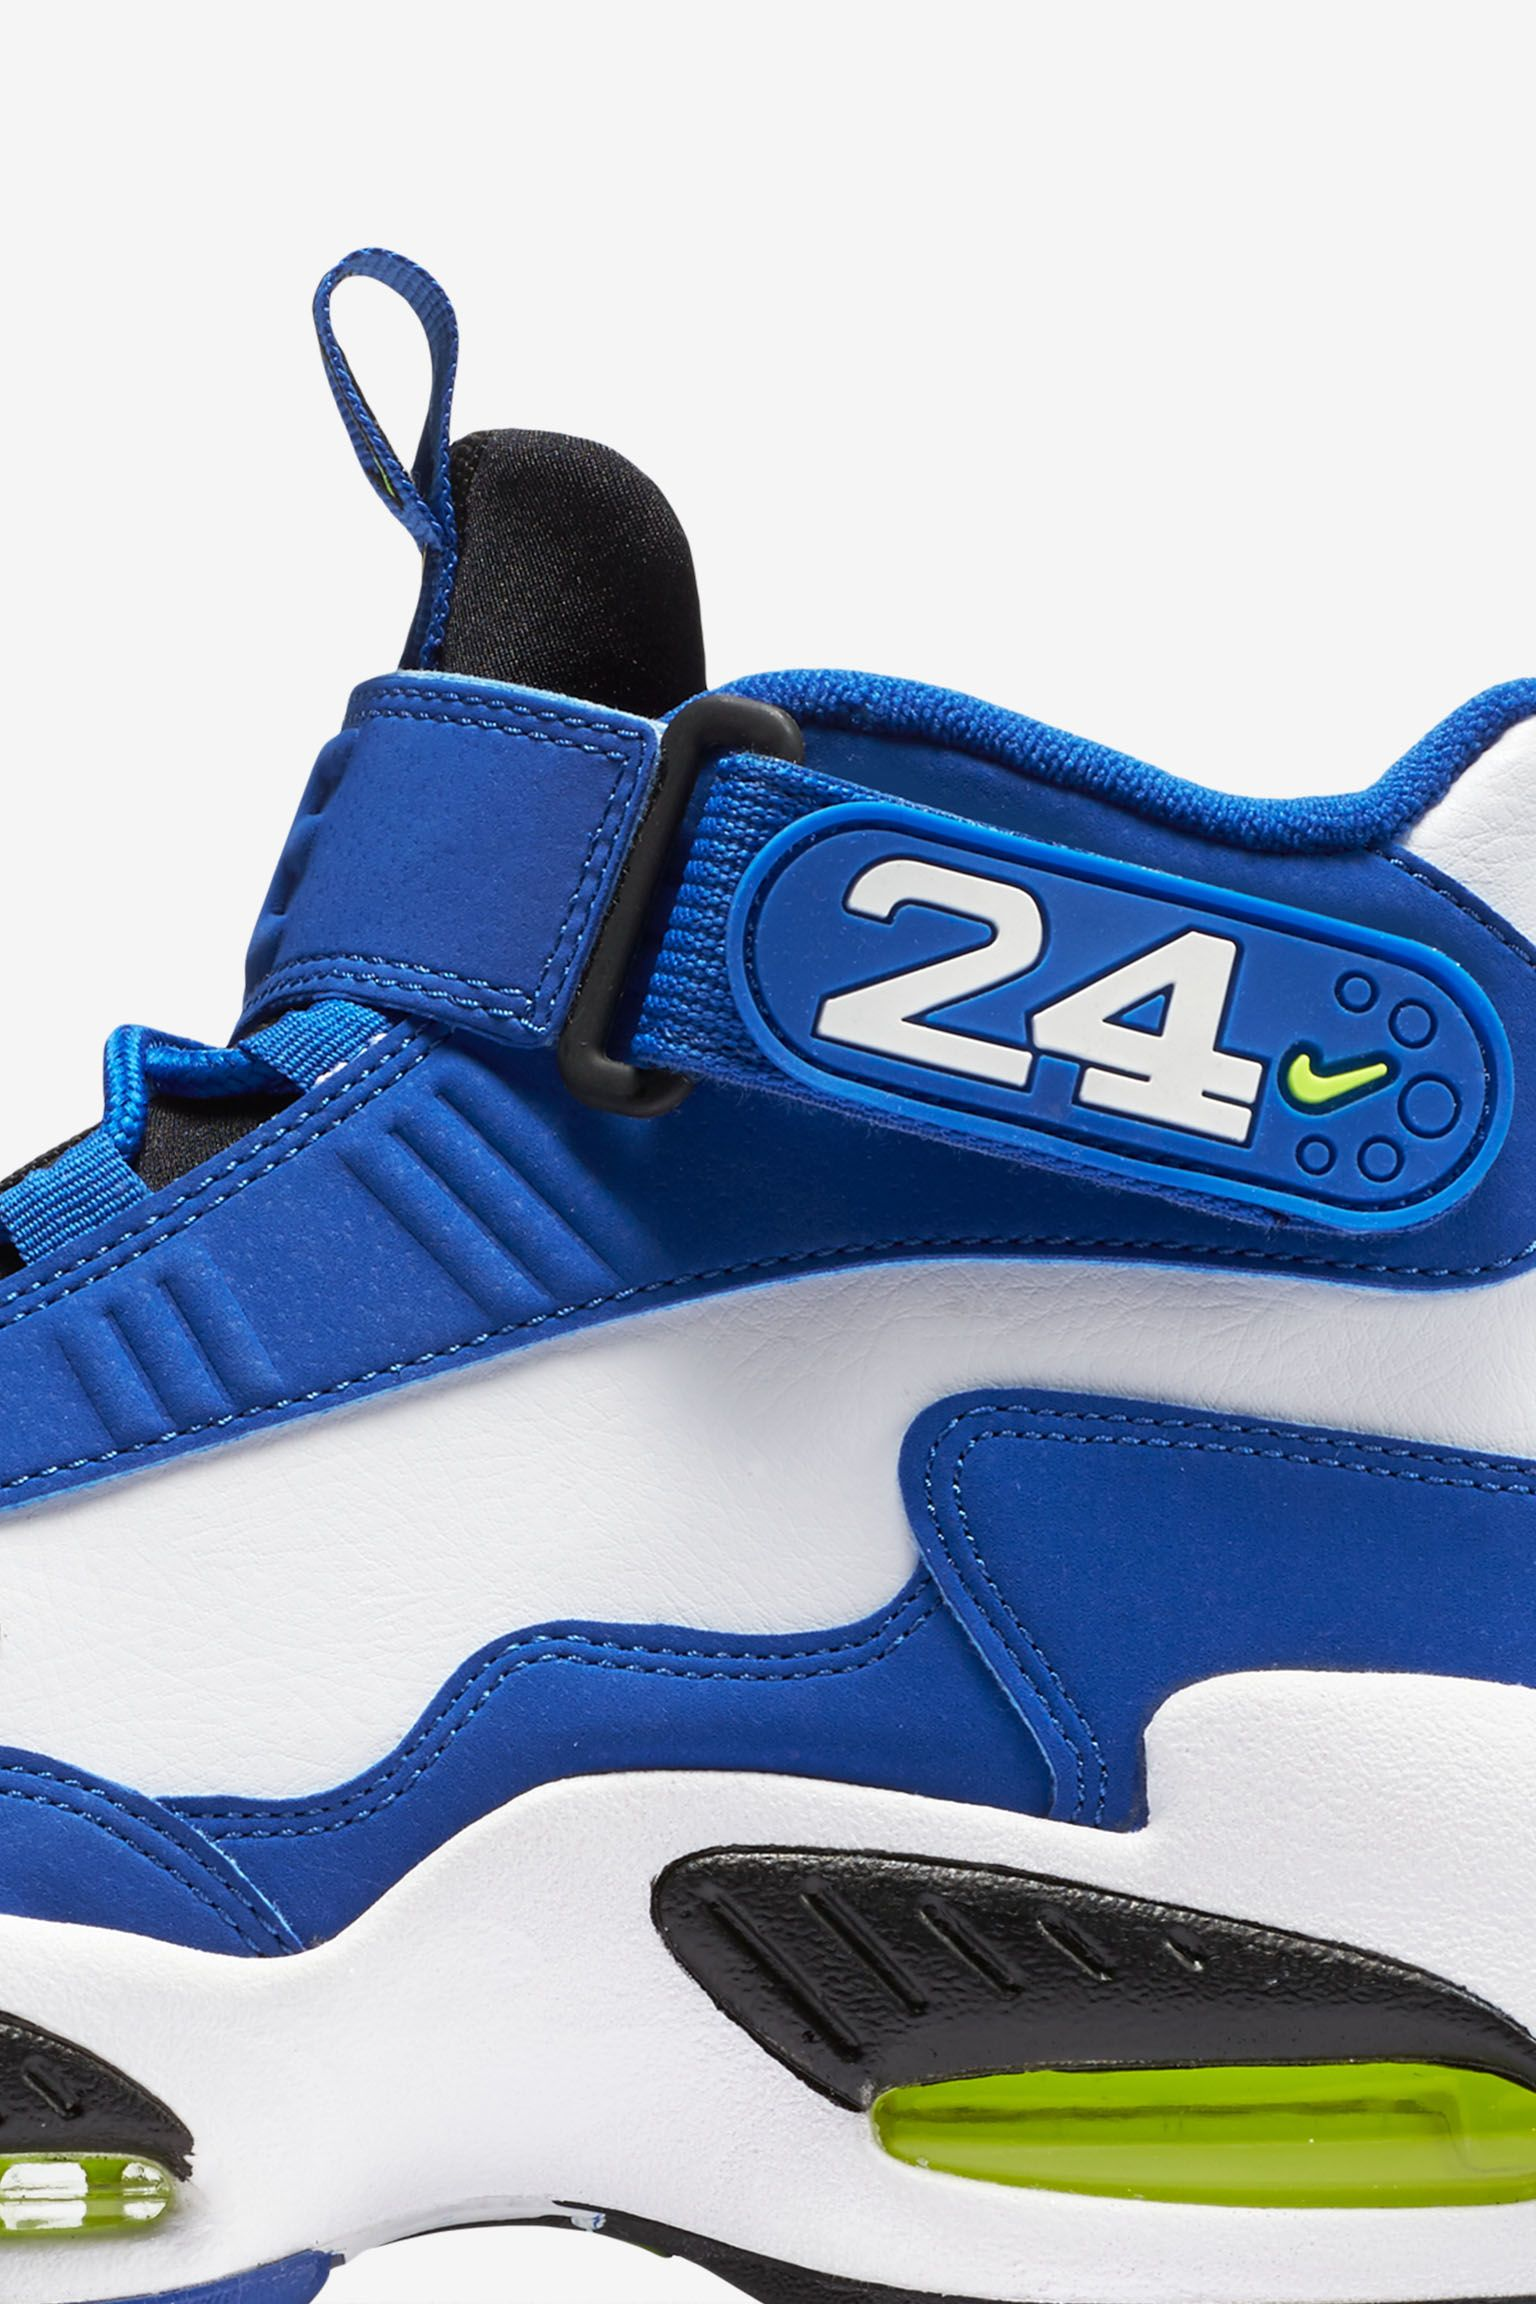 Nike Air Griffey Max 1 'Varsity Royal' Release Date